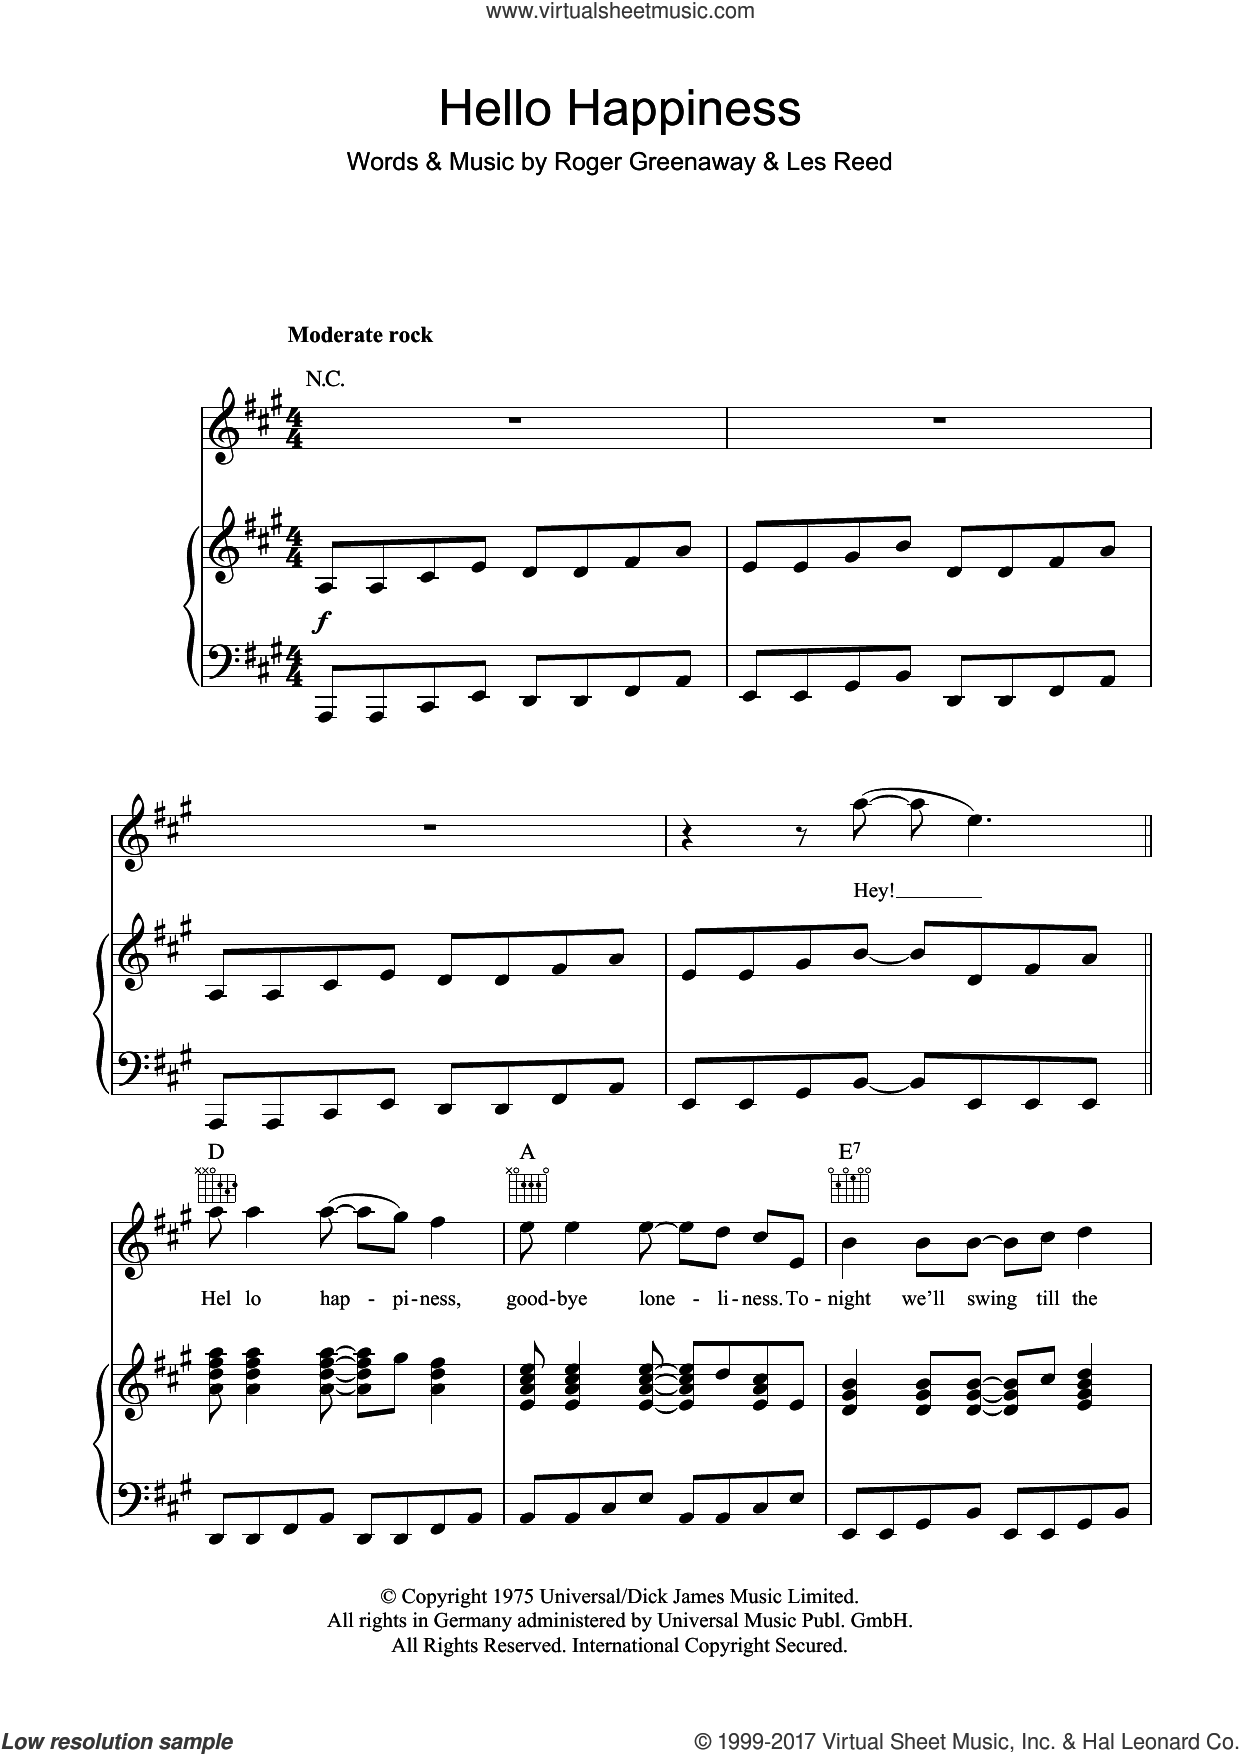 Hello Happiness sheet music for voice, piano or guitar by The Drifters, Les Reed and Roger Greenaway, intermediate skill level